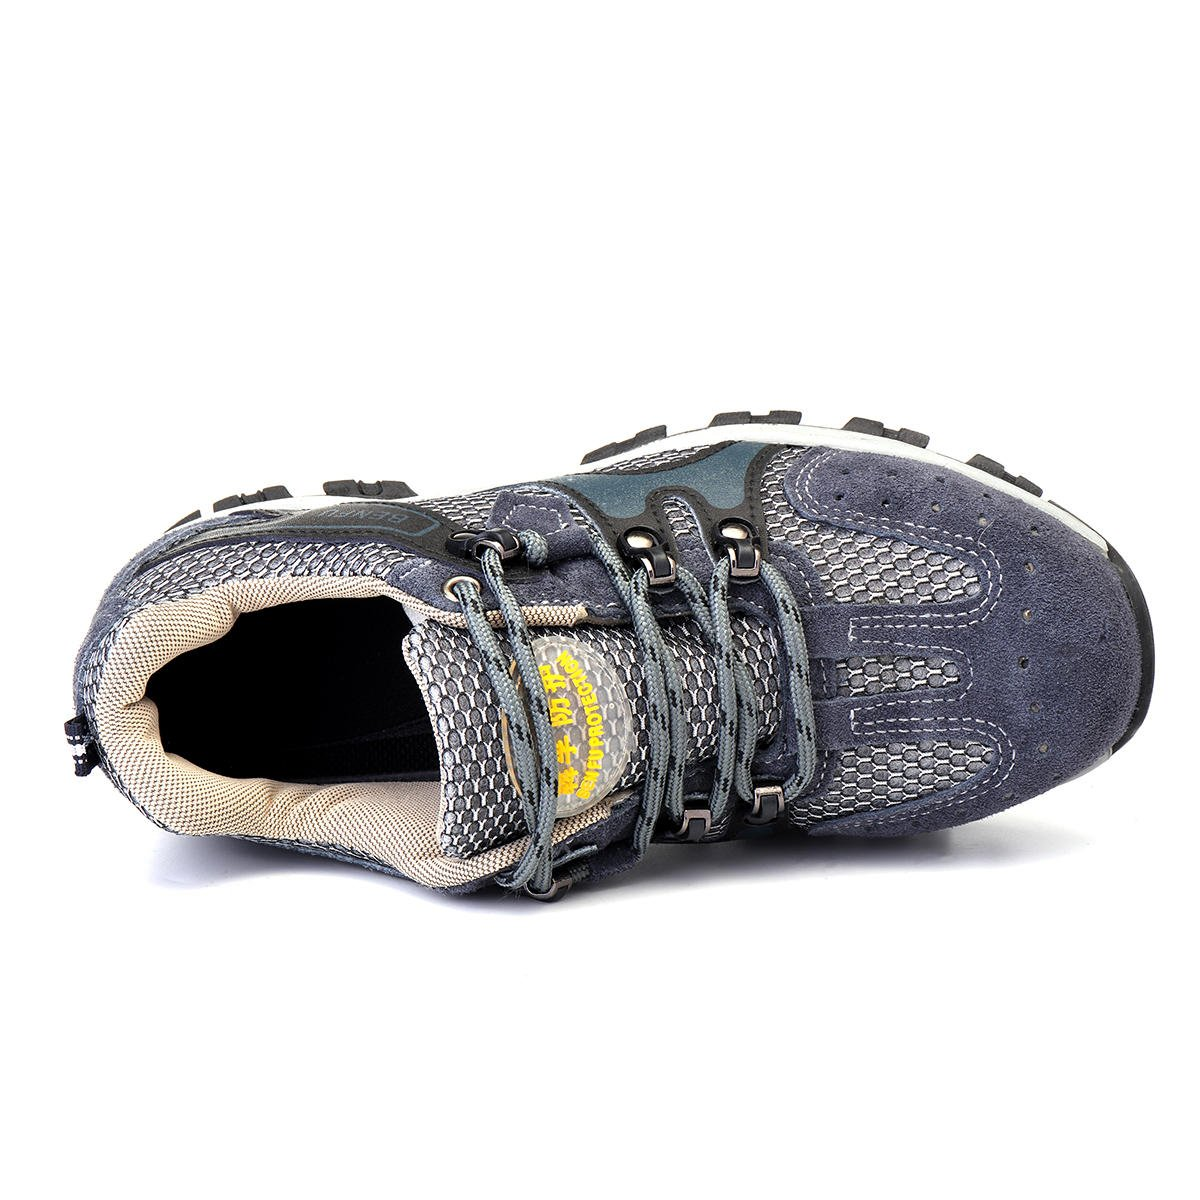 Men's Safety Shoes Steel Toe Work Sneakers Slip Resistant Breathable Hiking Climbing Shoes - 7.5 by Anddoa (Image #7)